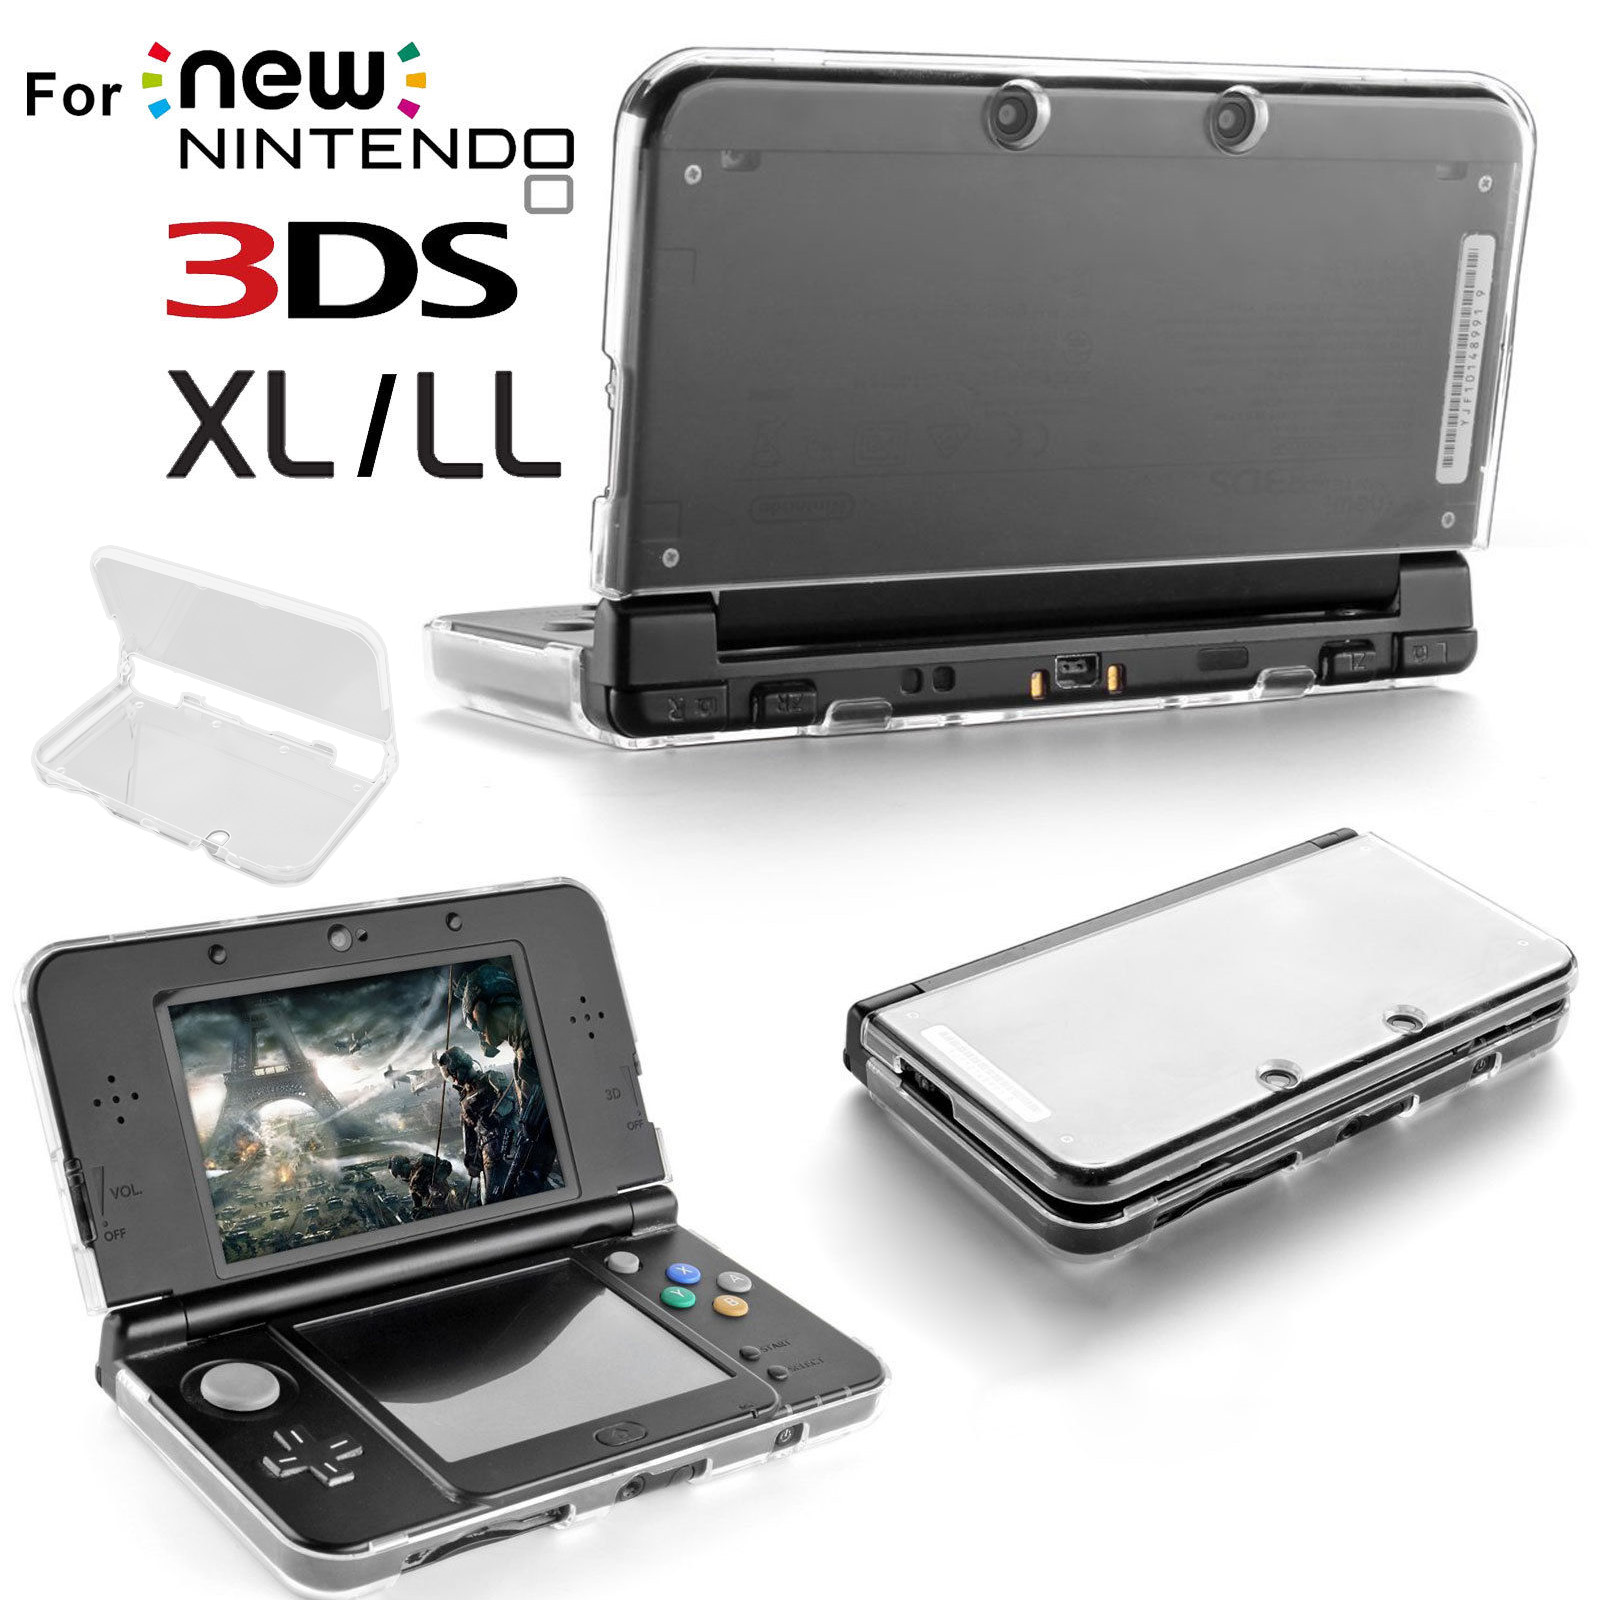 TSV Super Crystal Case for New Nintendo 3DS XL / LL, Clear